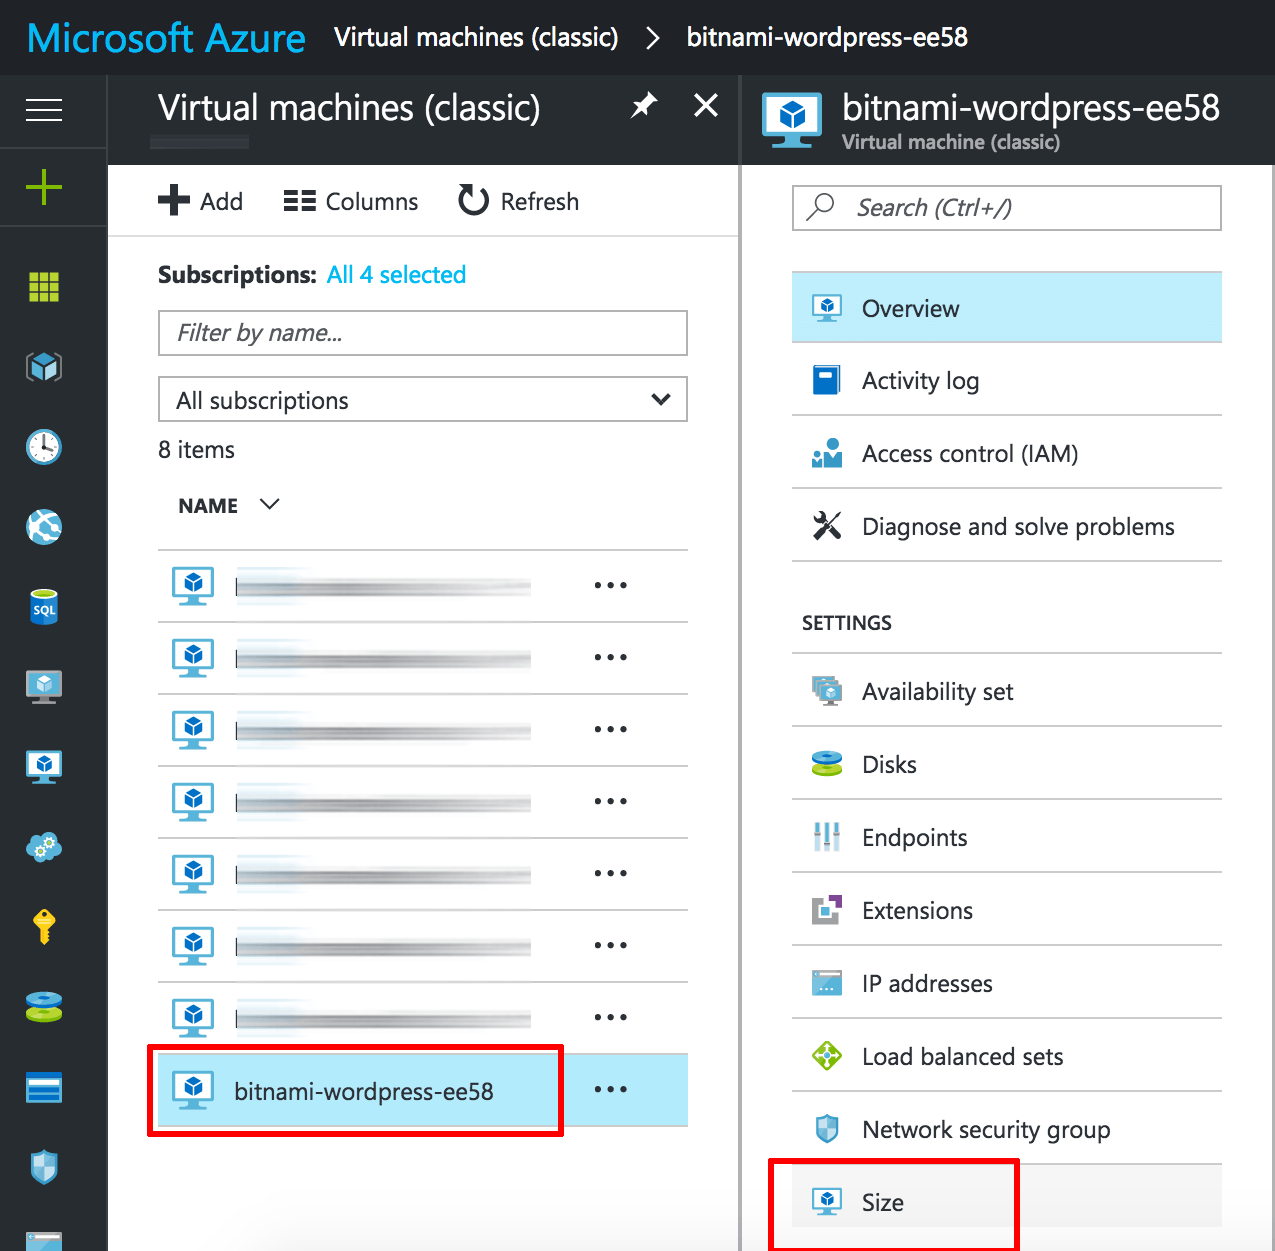 Azure VM size options